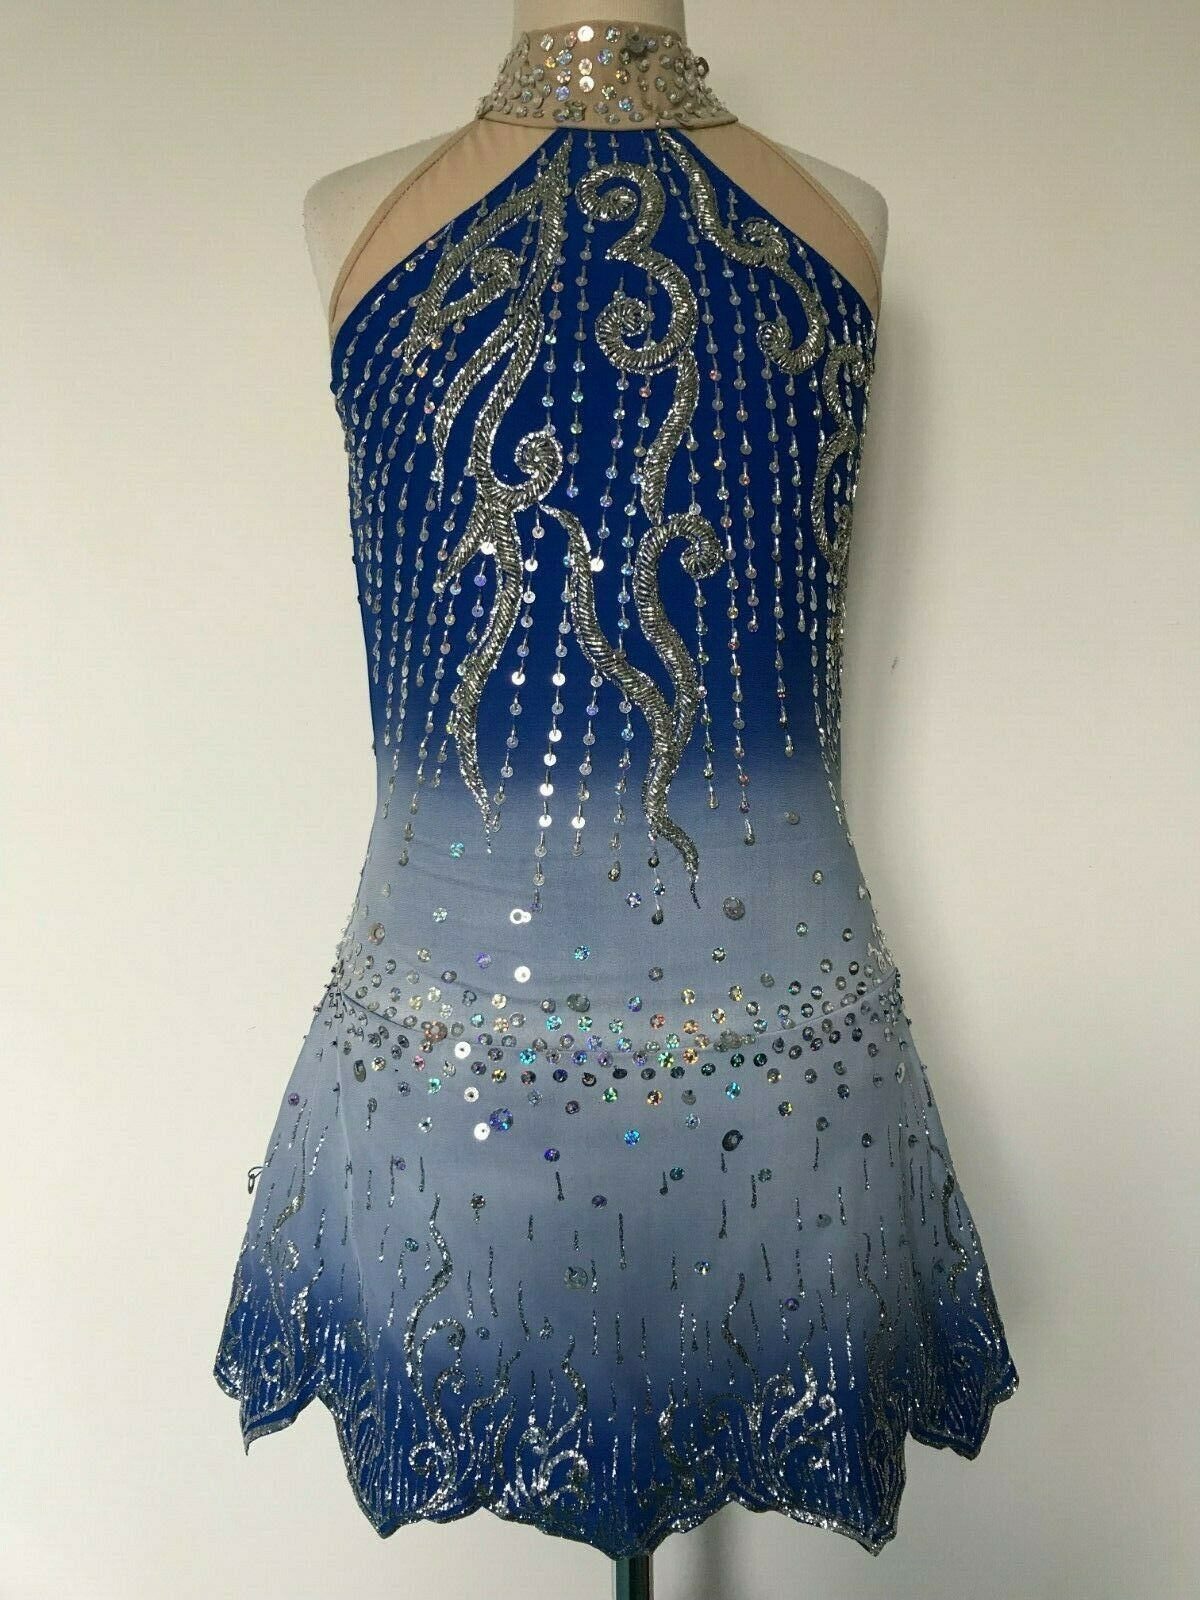 SALE   NEW blueE FIGURE ICE SKATING BATON TWIRLING DRESS COSTUME GIRL XL  not to be missed!